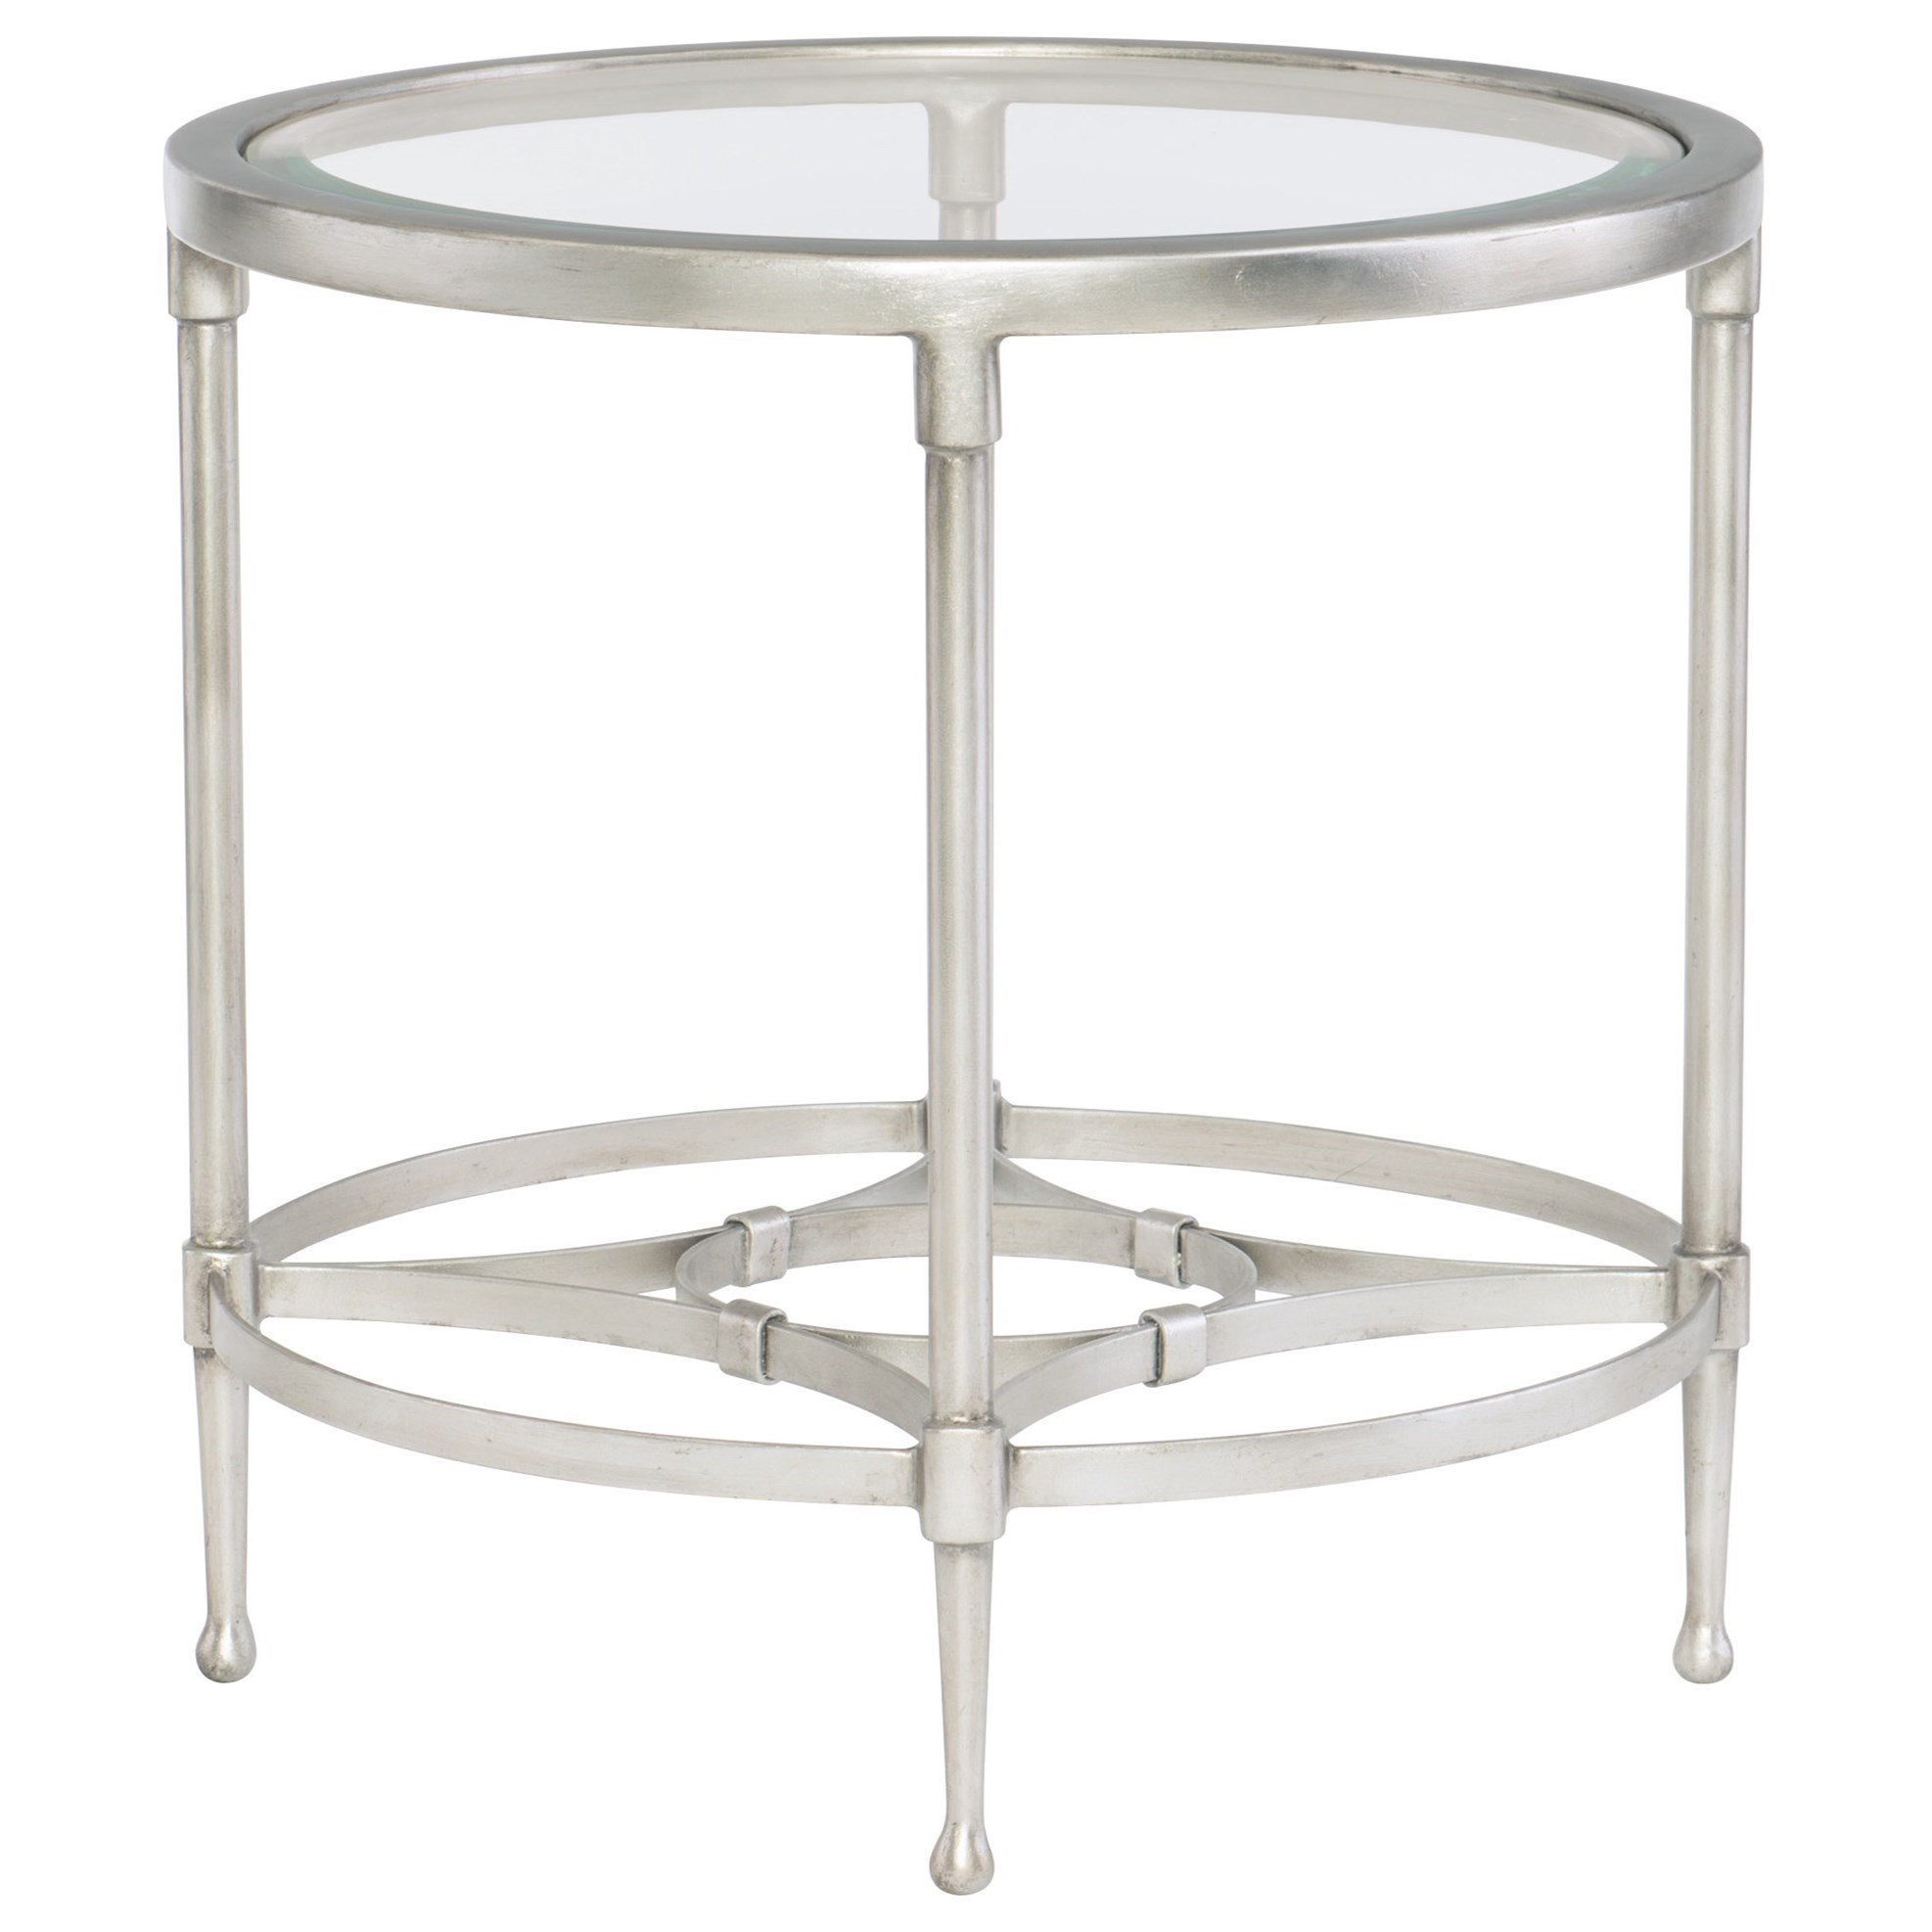 Metal Glass End Tables Cordelia Contemporary Round Metal End Table With Glass Top By Bernhardt At Dunk Bright Furniture